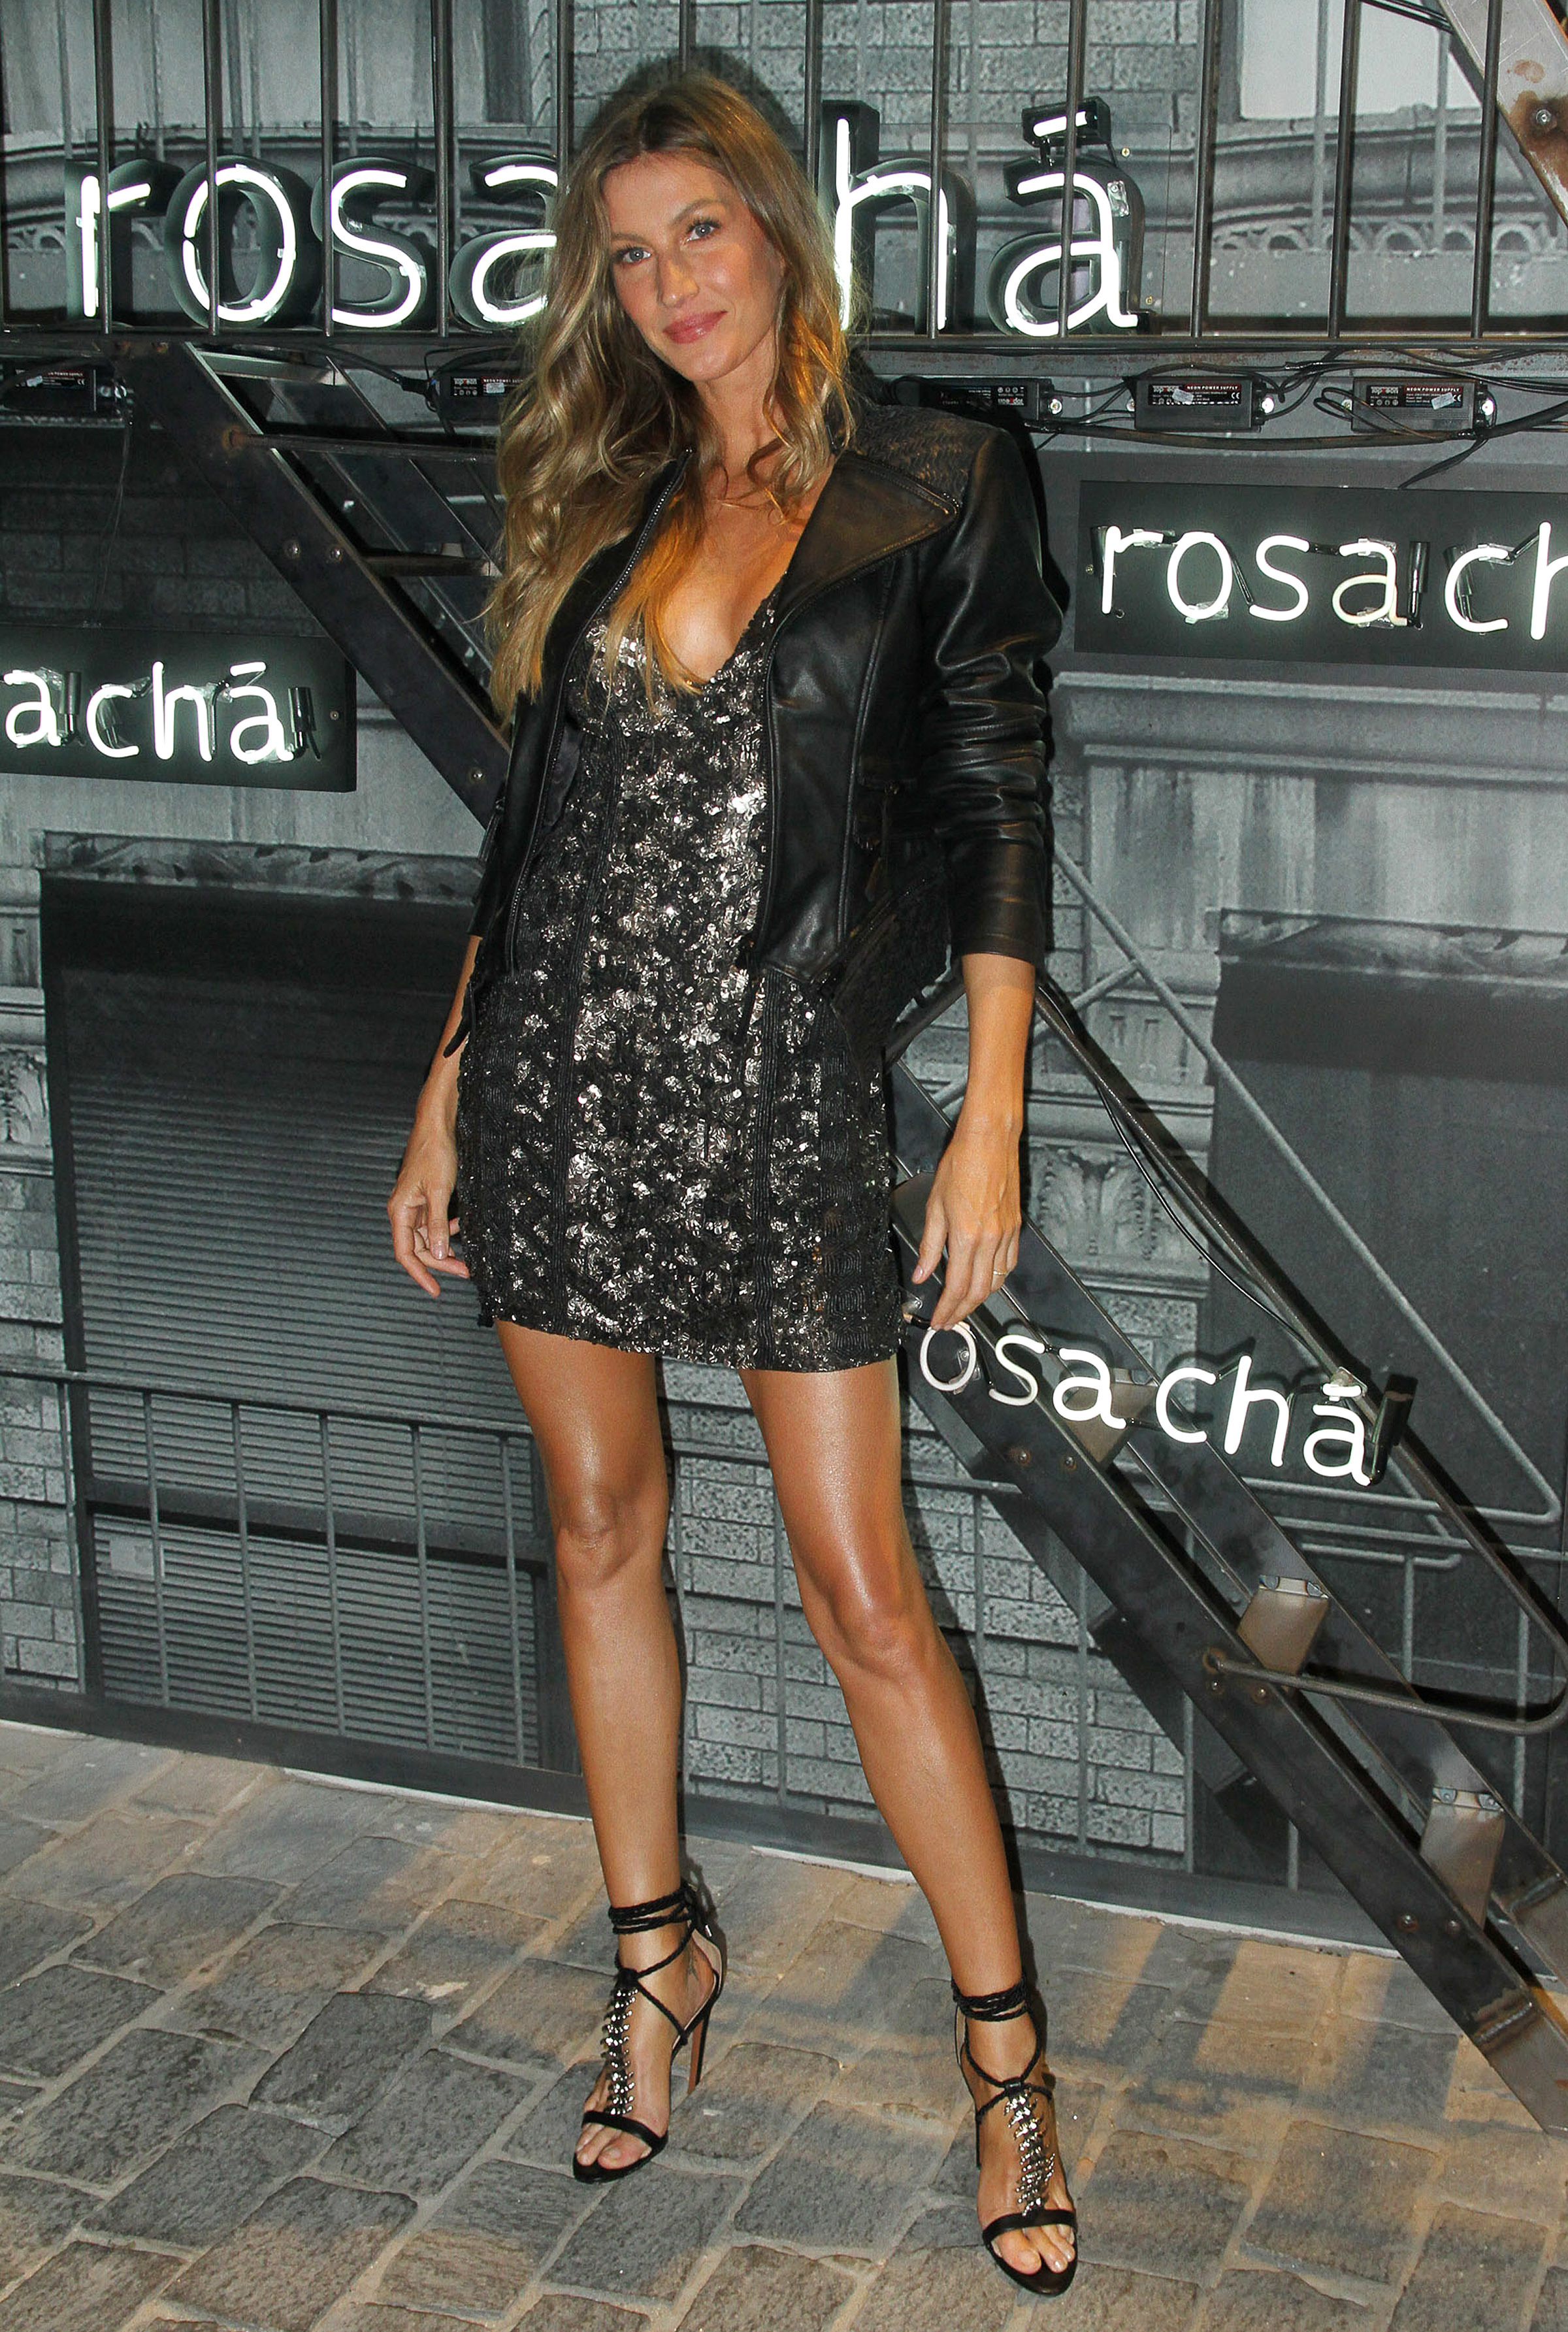 Gisele Bundchen attends the Rosa Cha Summer Collection Launch Event in Sao Paulo, Brazil, on Aug. 16, 2017.